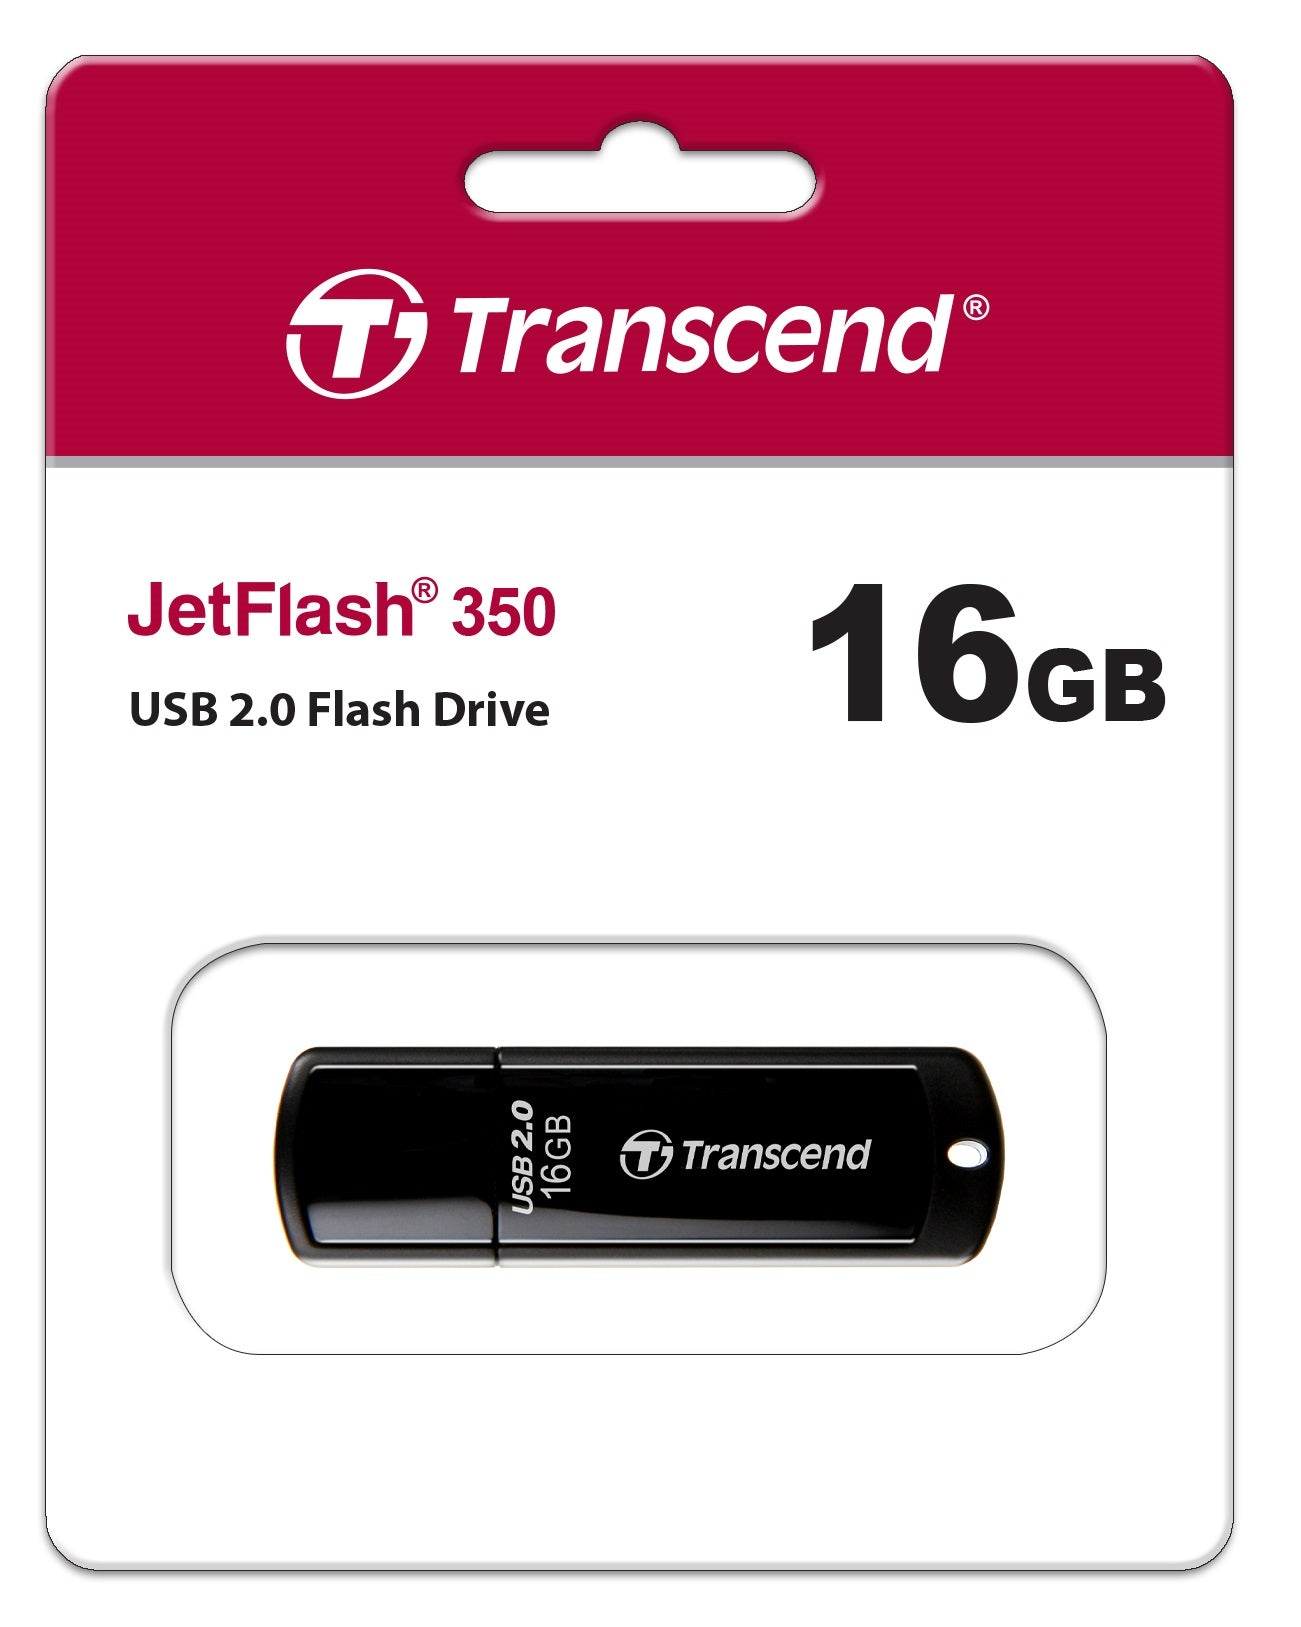 Transcend JetFlash 350 16GB USB Flash Drive - Black